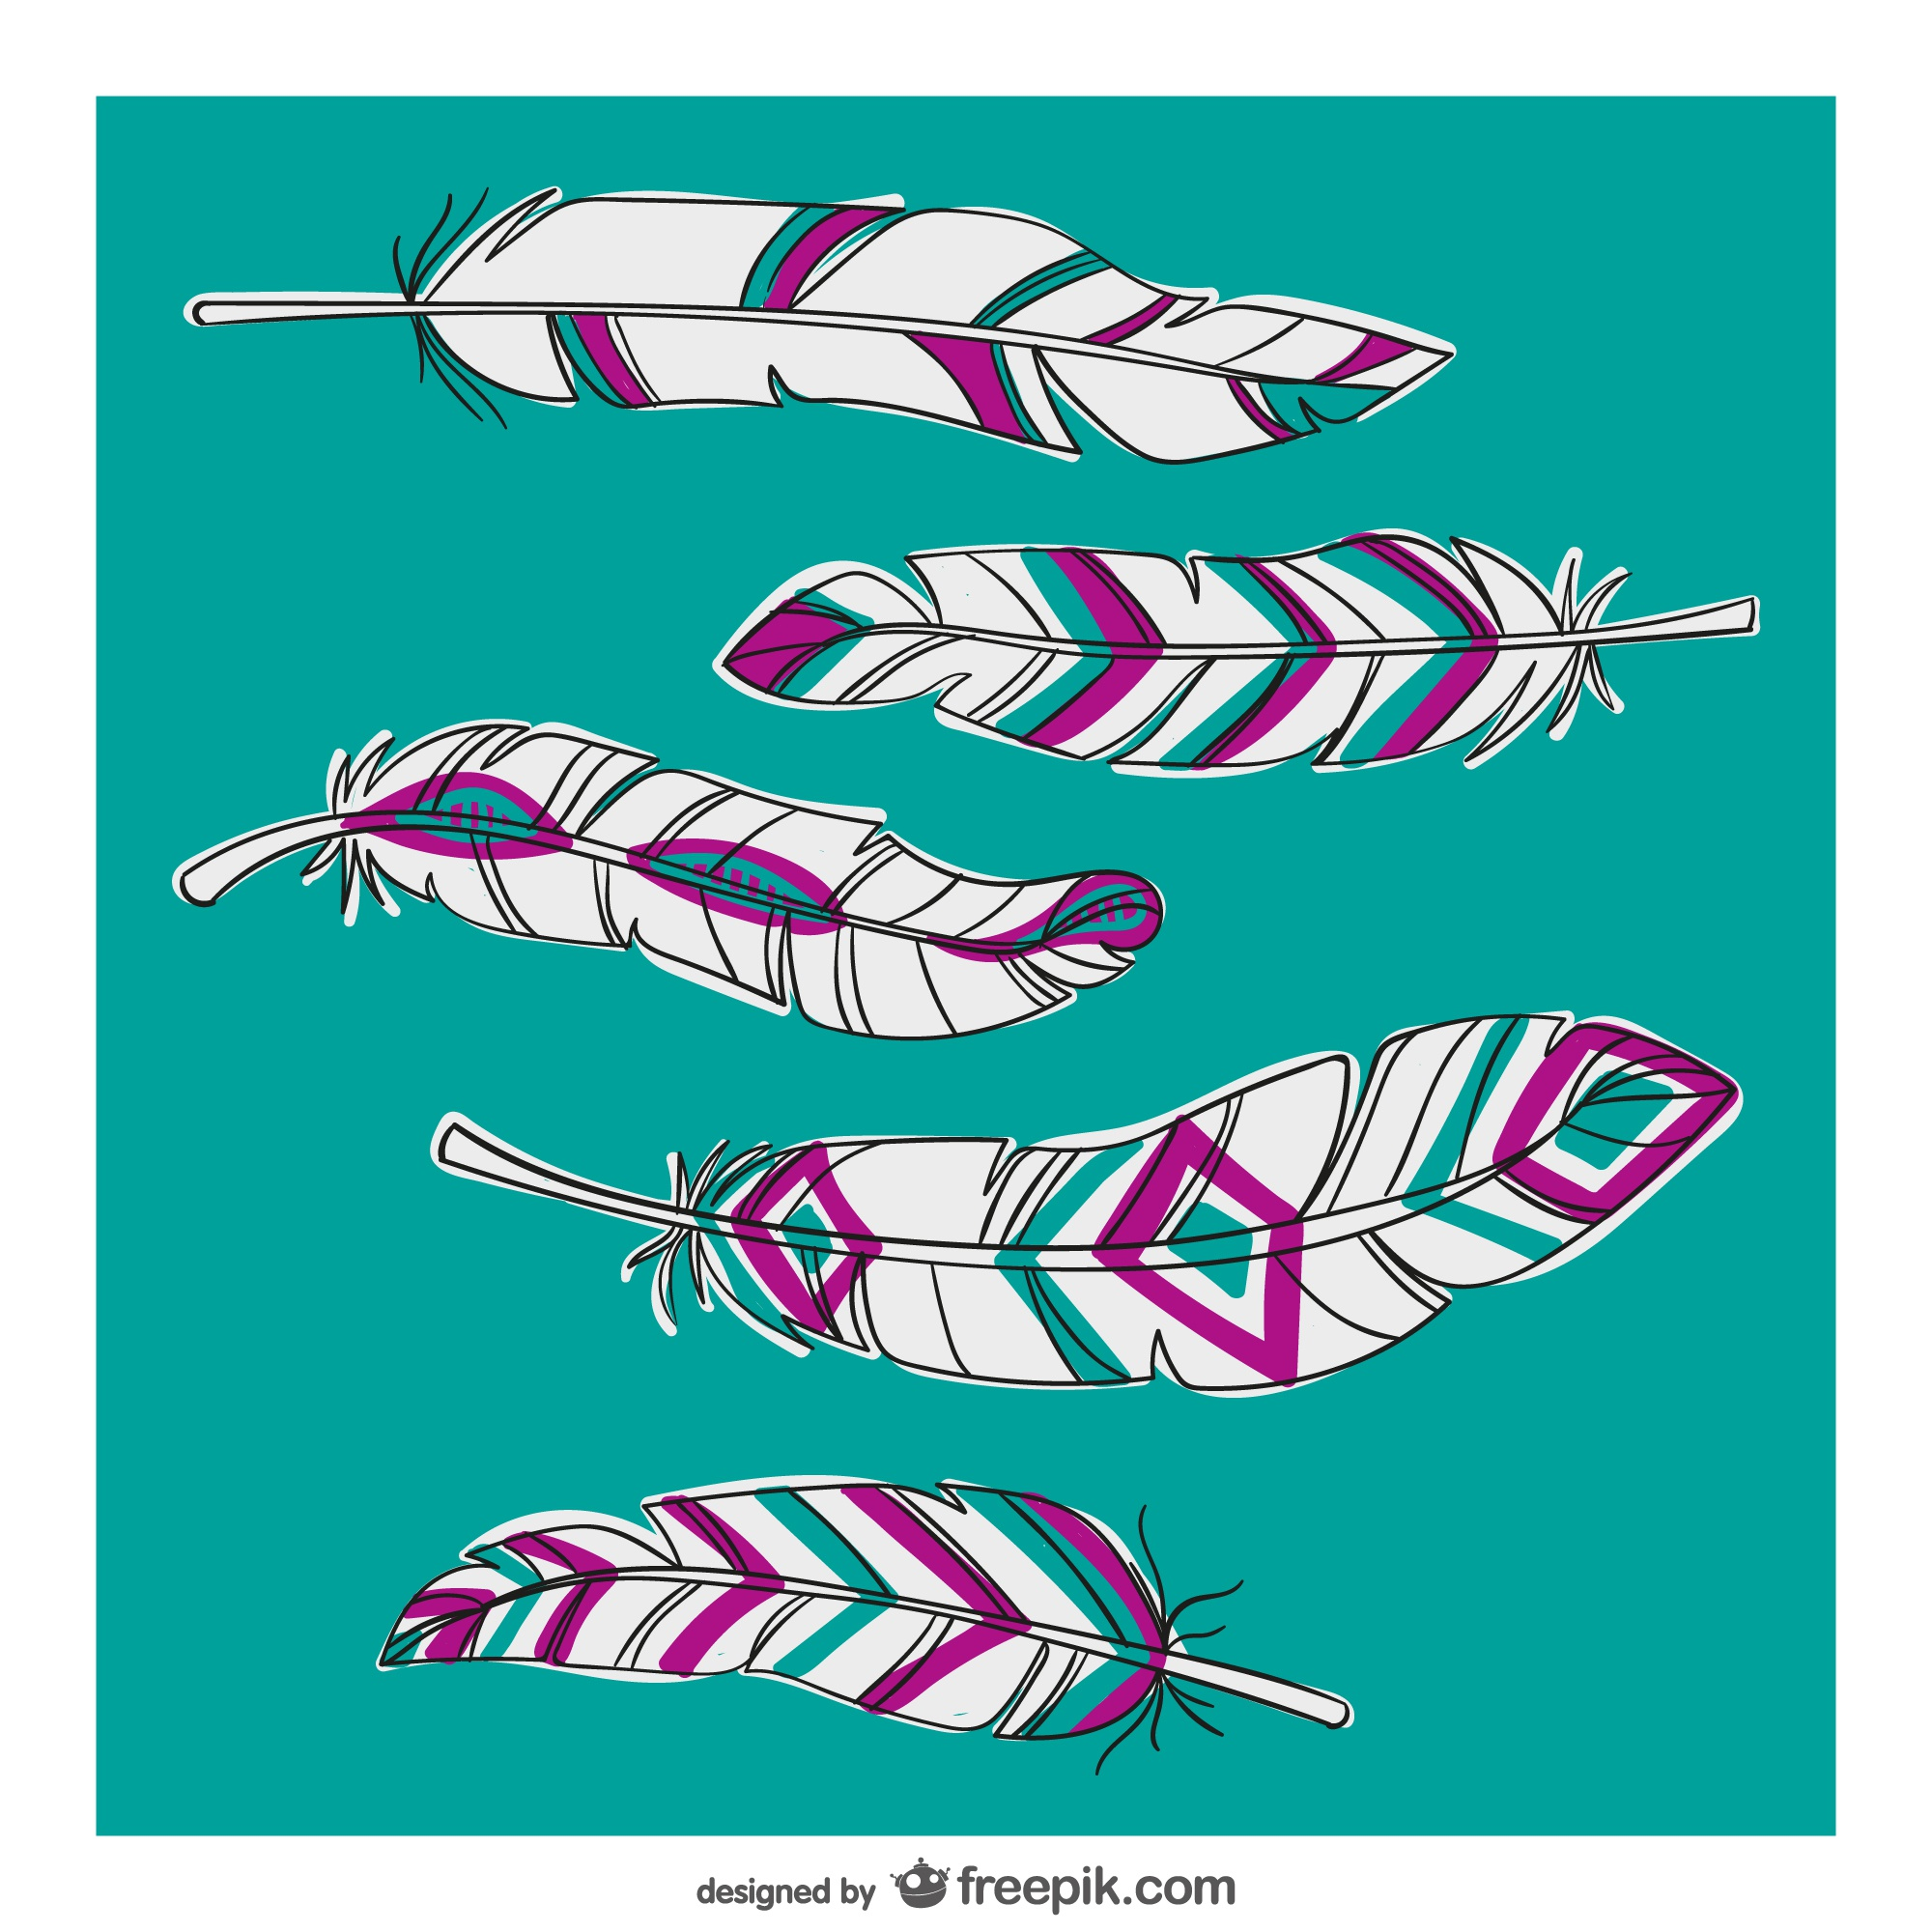 Feathers with abstract patterns